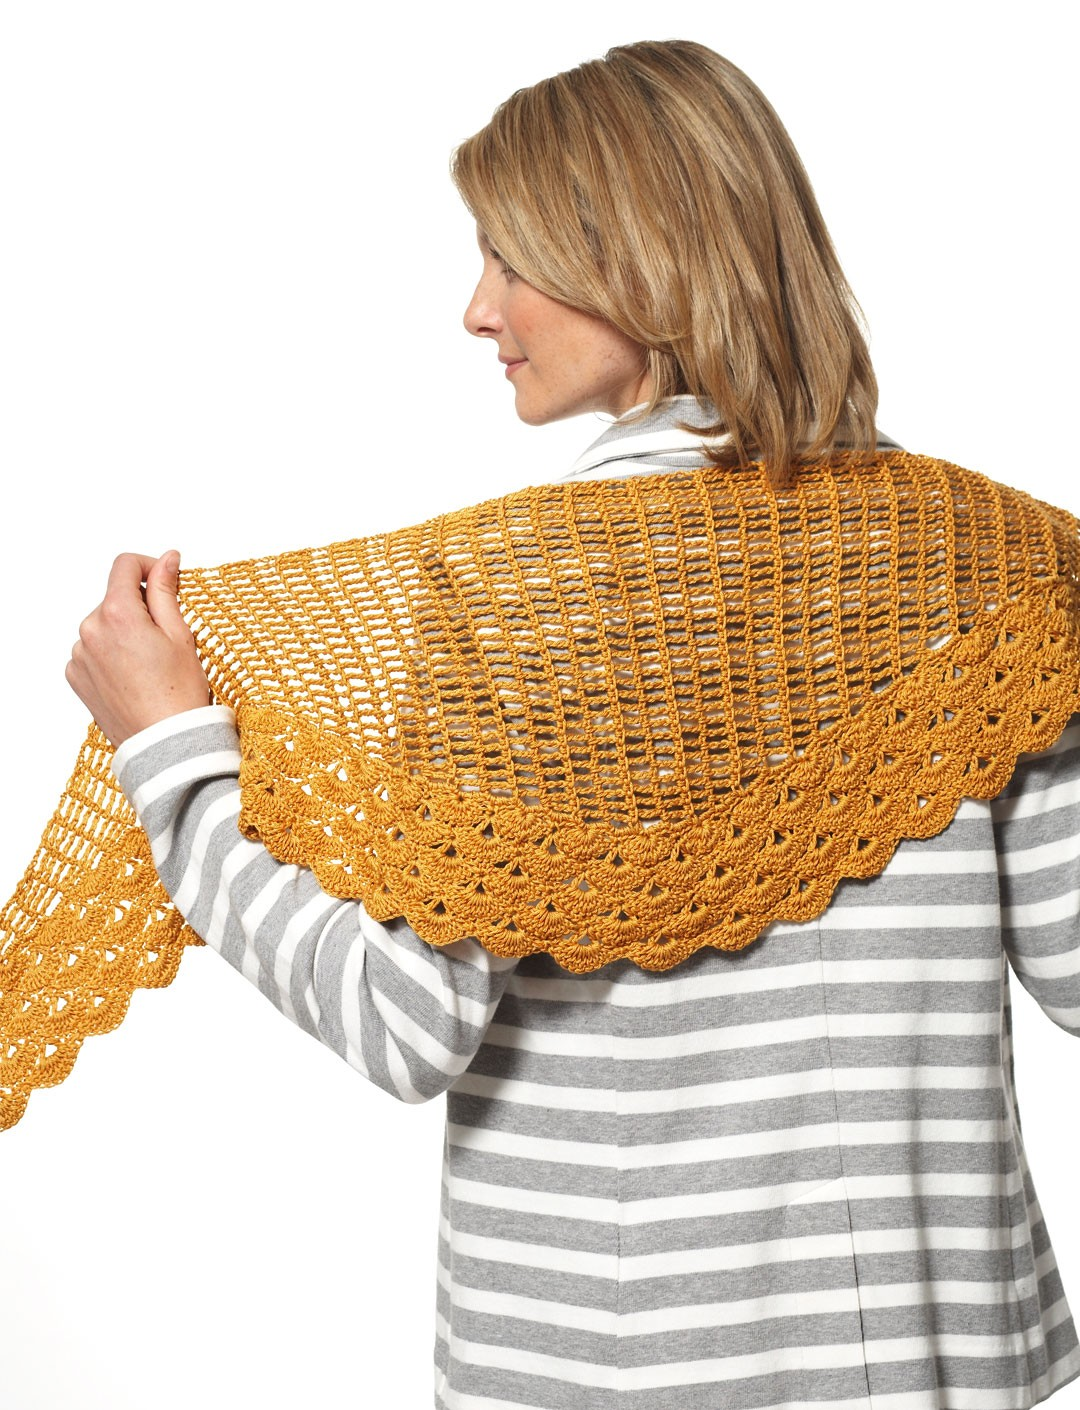 Free Crochet Patterns Using Patons Lace Yarn : Patons Grace - Staggered Shells Wrap (crochet), Crochet ...